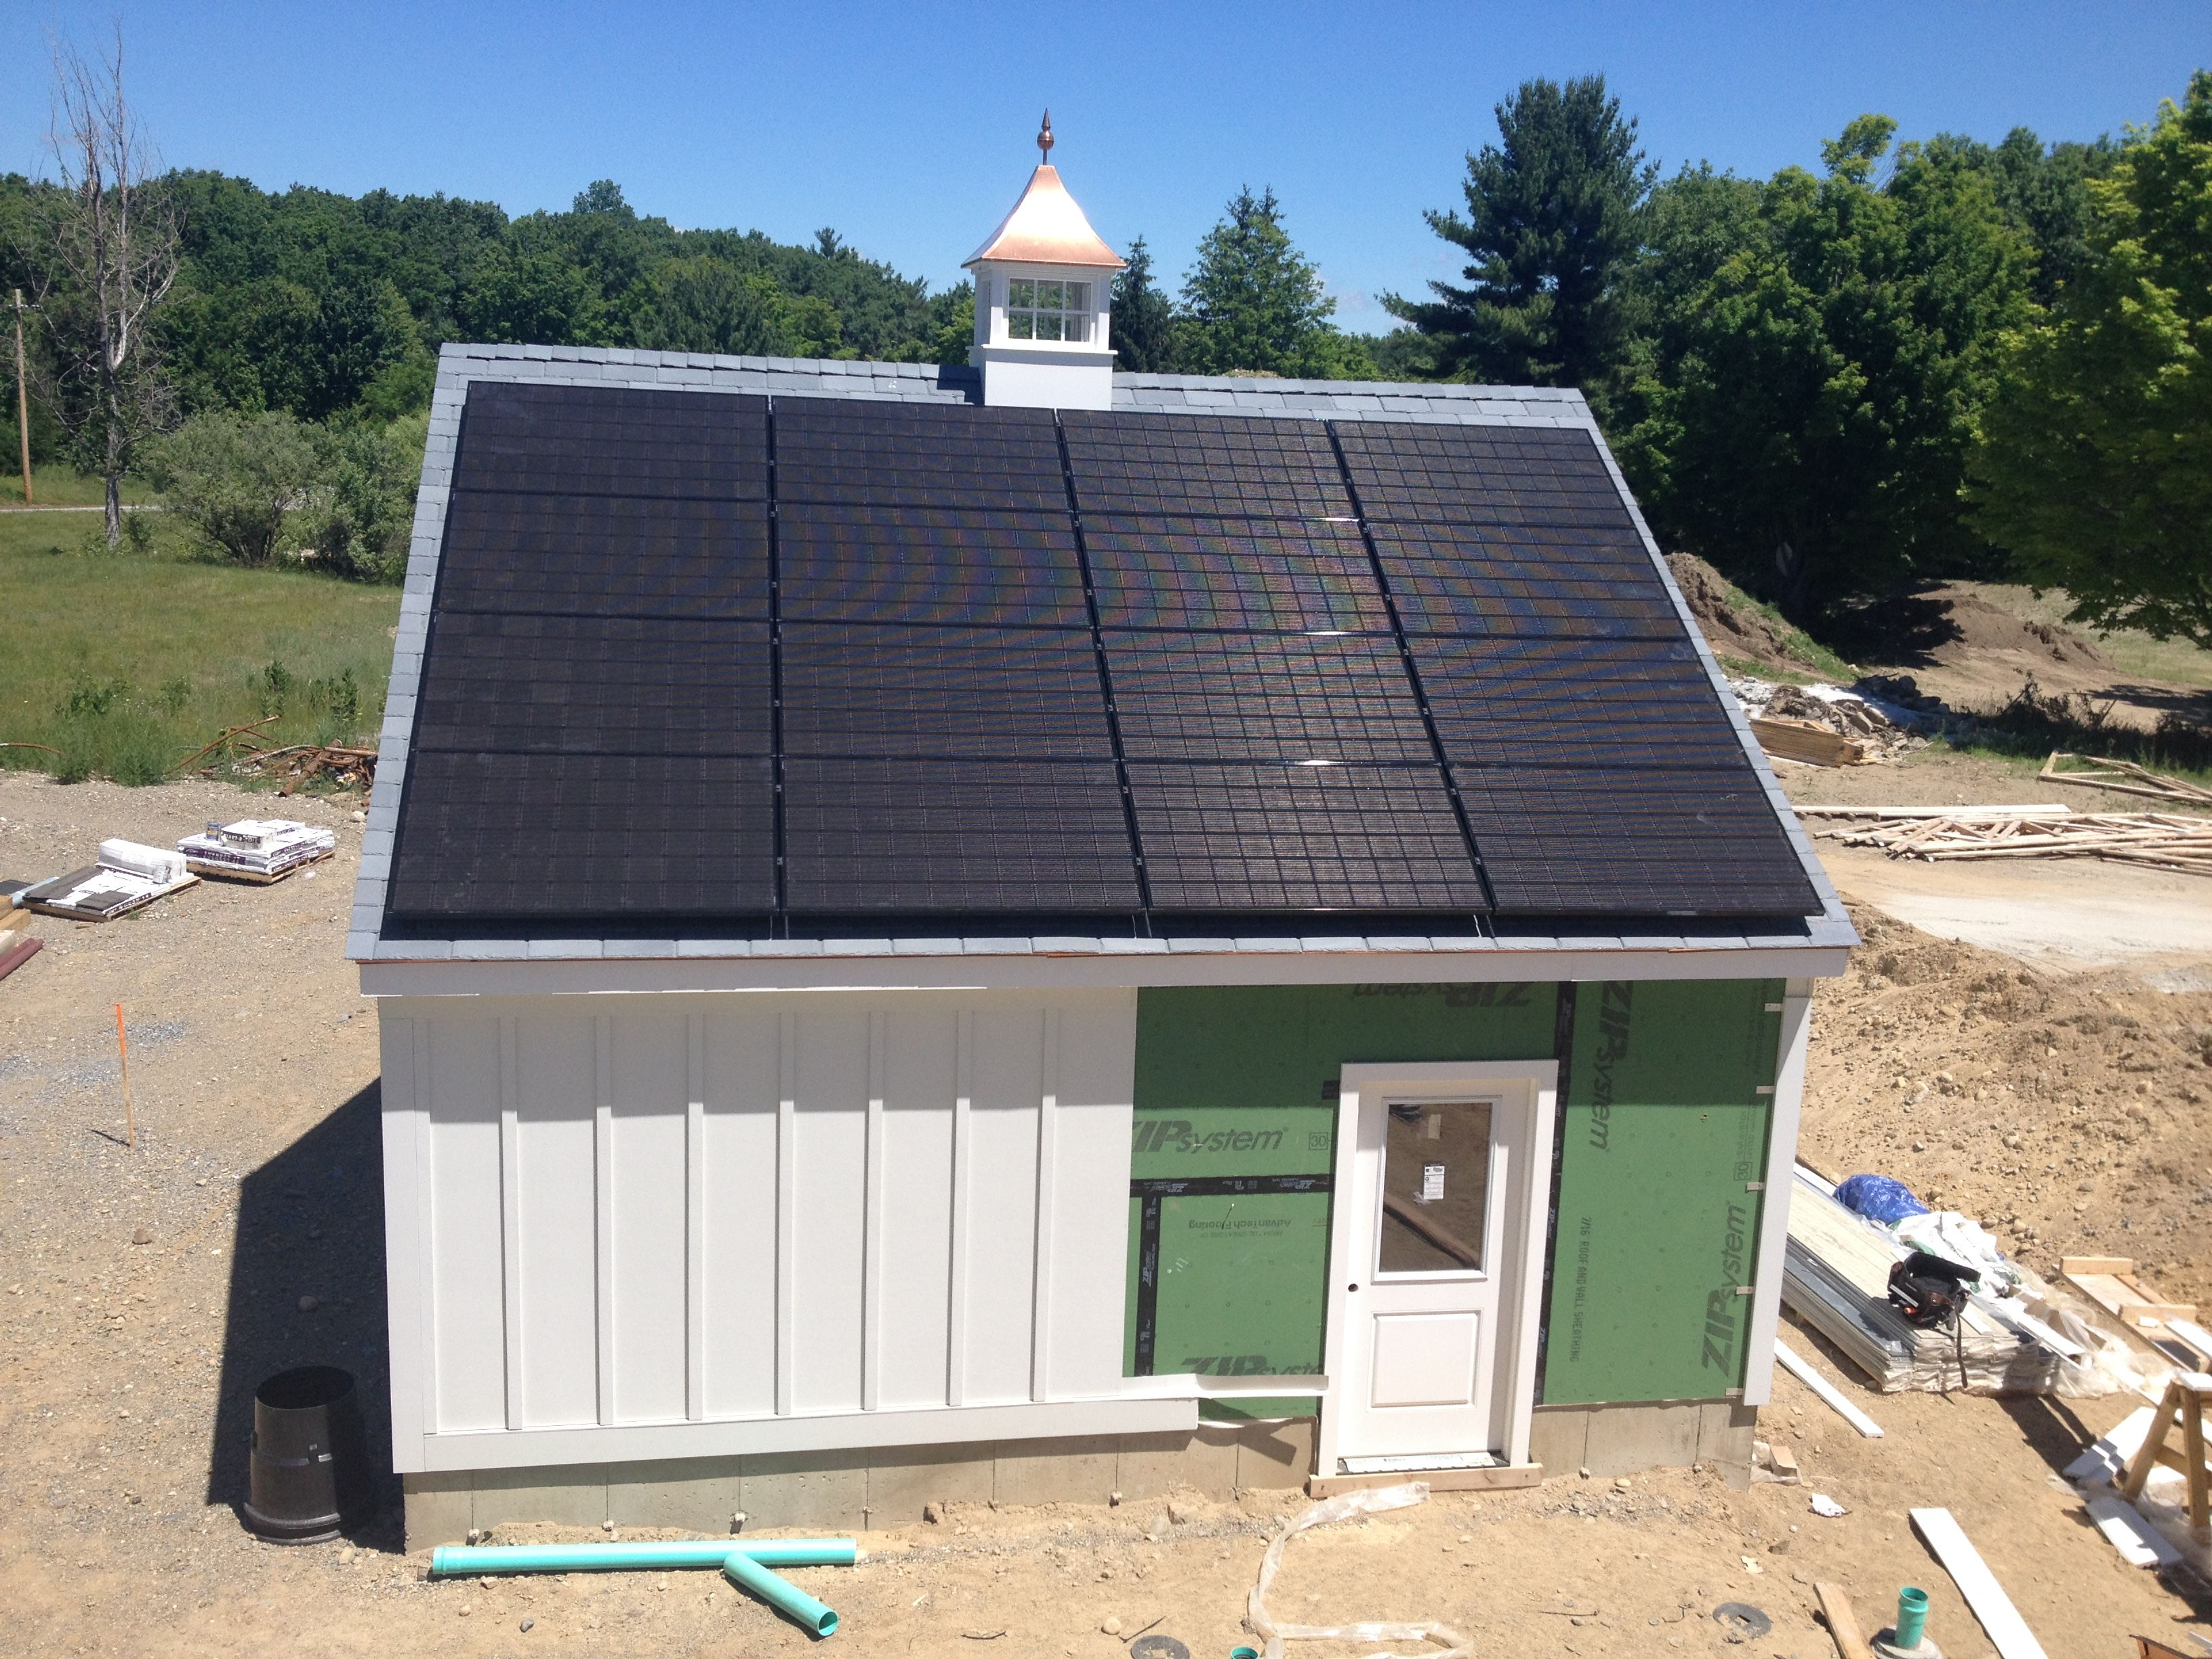 The Solar Panels Are On These 16 High Efficiency Black Photo Voltaic Panels By Sunbug Solar Will Provide Up To A Third O Studios Architecture Solar Old Houses